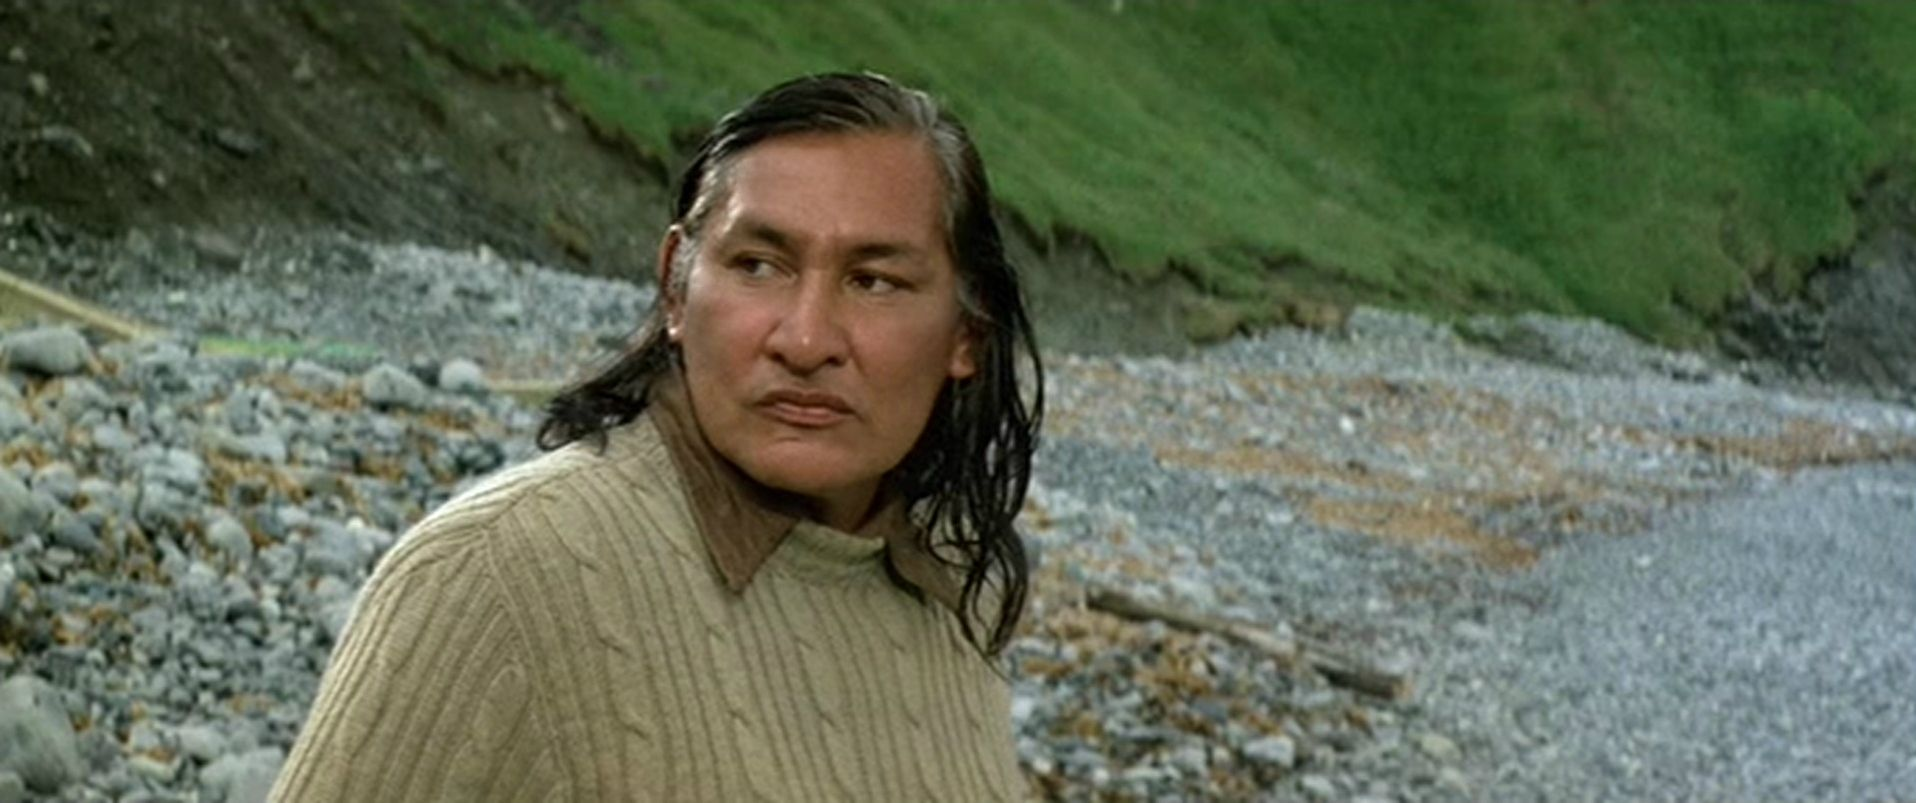 will sampson height